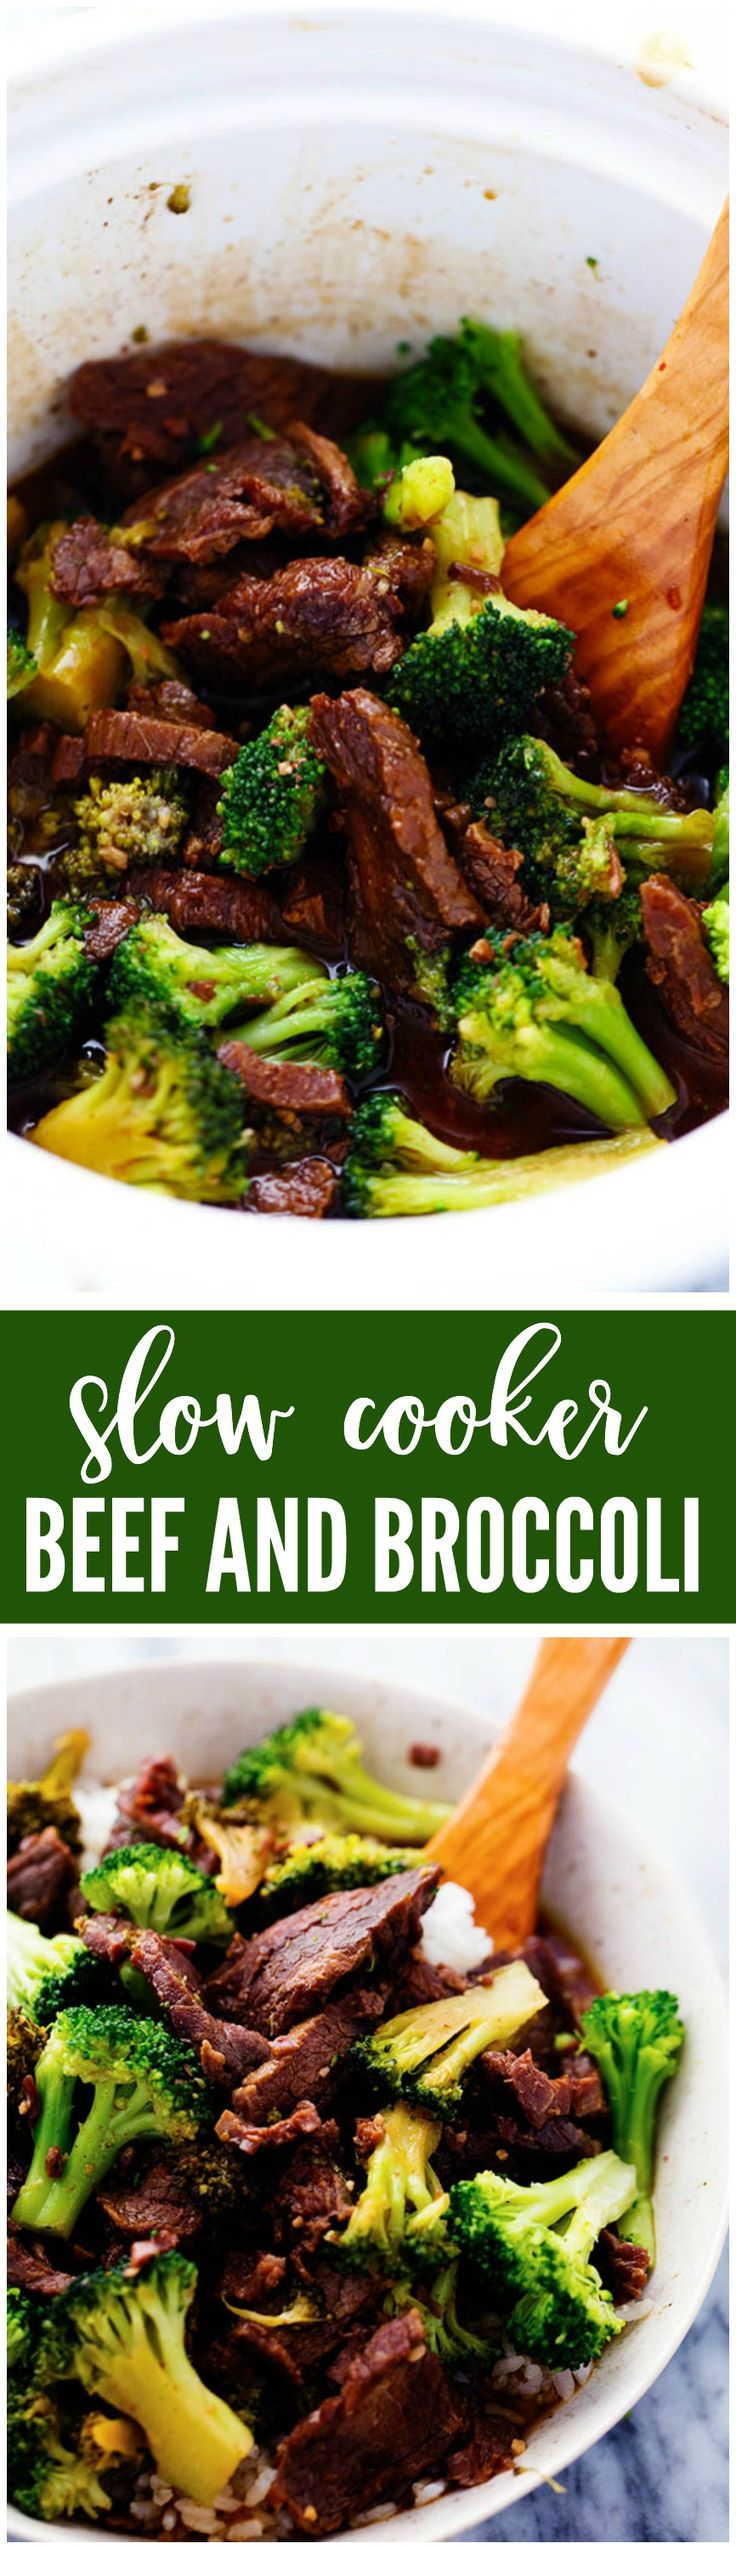 This Beef and Broccoli takes just minutes to throw in the slow cooker. The beef melts in your mouth and the flavor is out of this world! My top five favorite recipes on the blog!